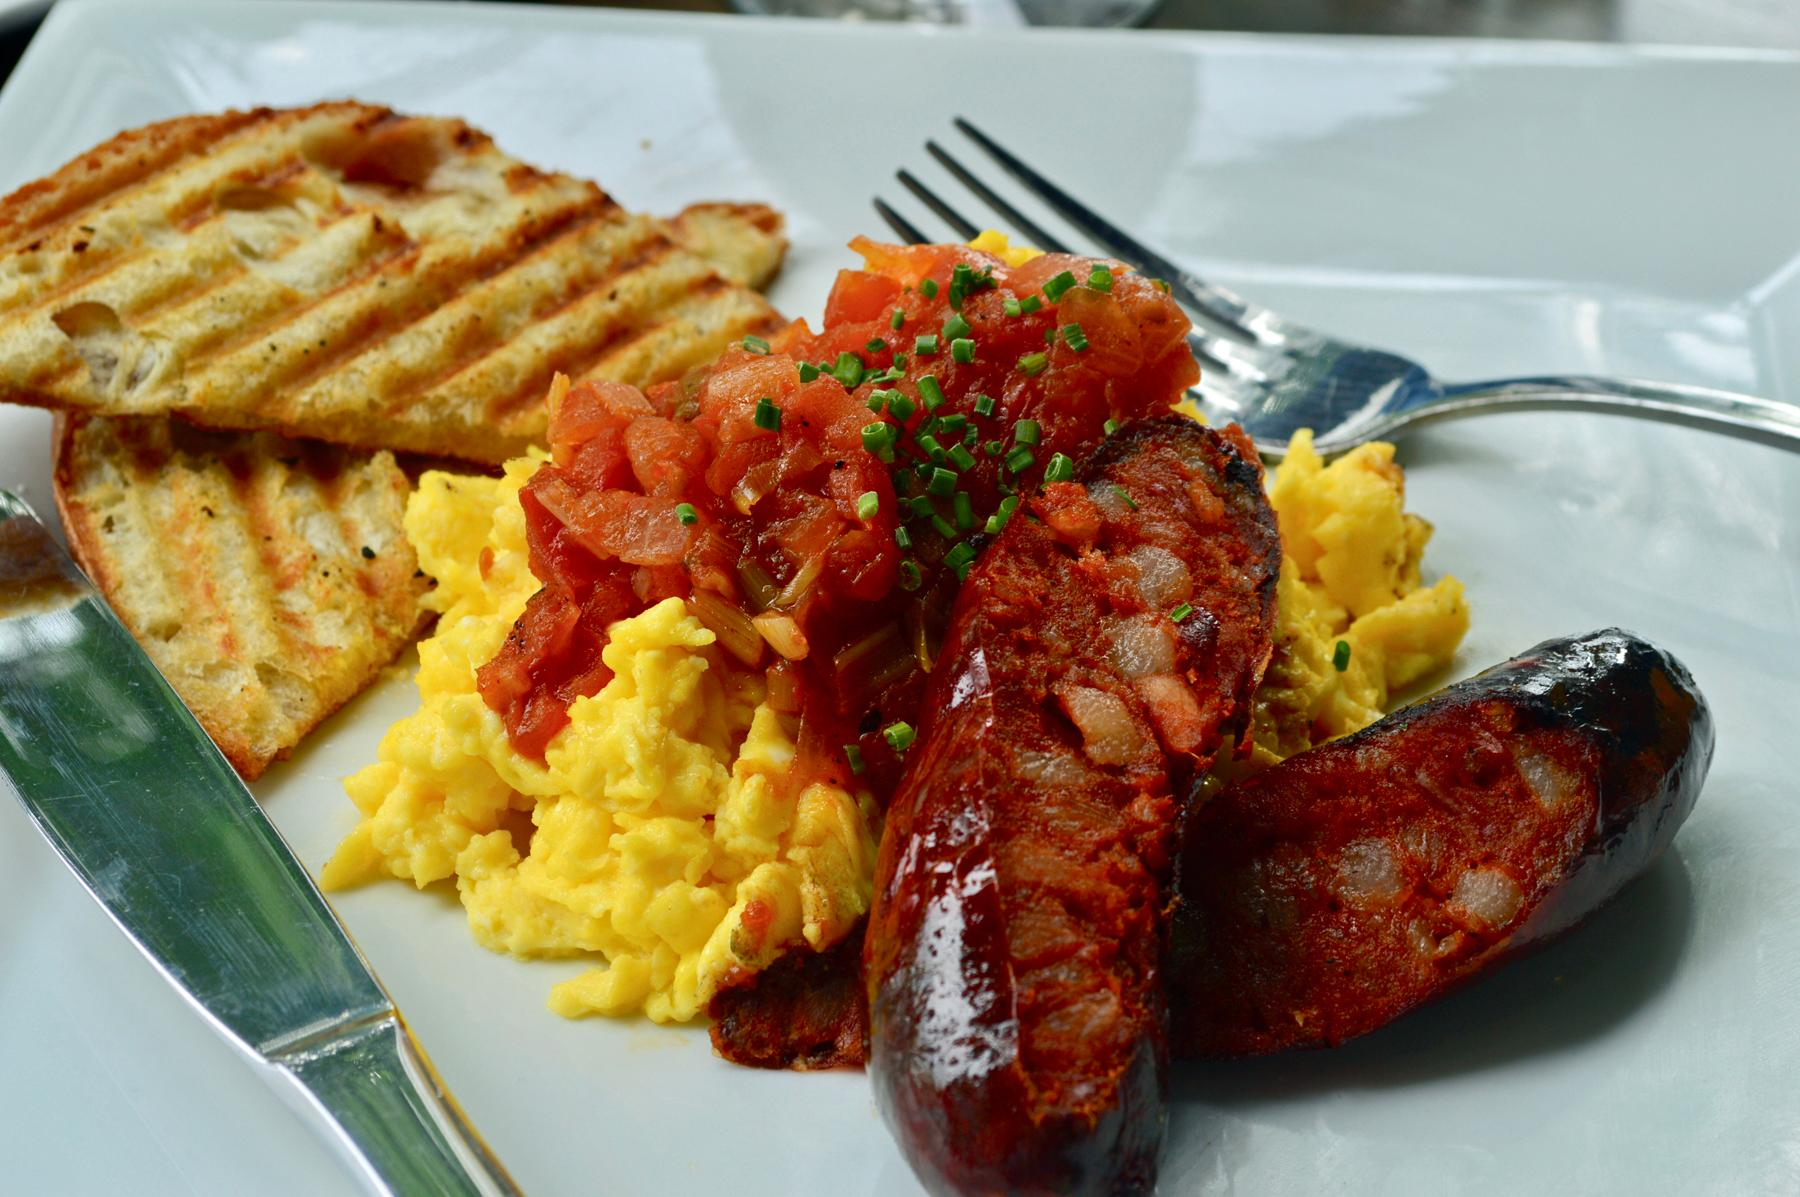 Huevos pericos are part of the new brunch menu at Little Havana. (IImage:{ } Little Havana)